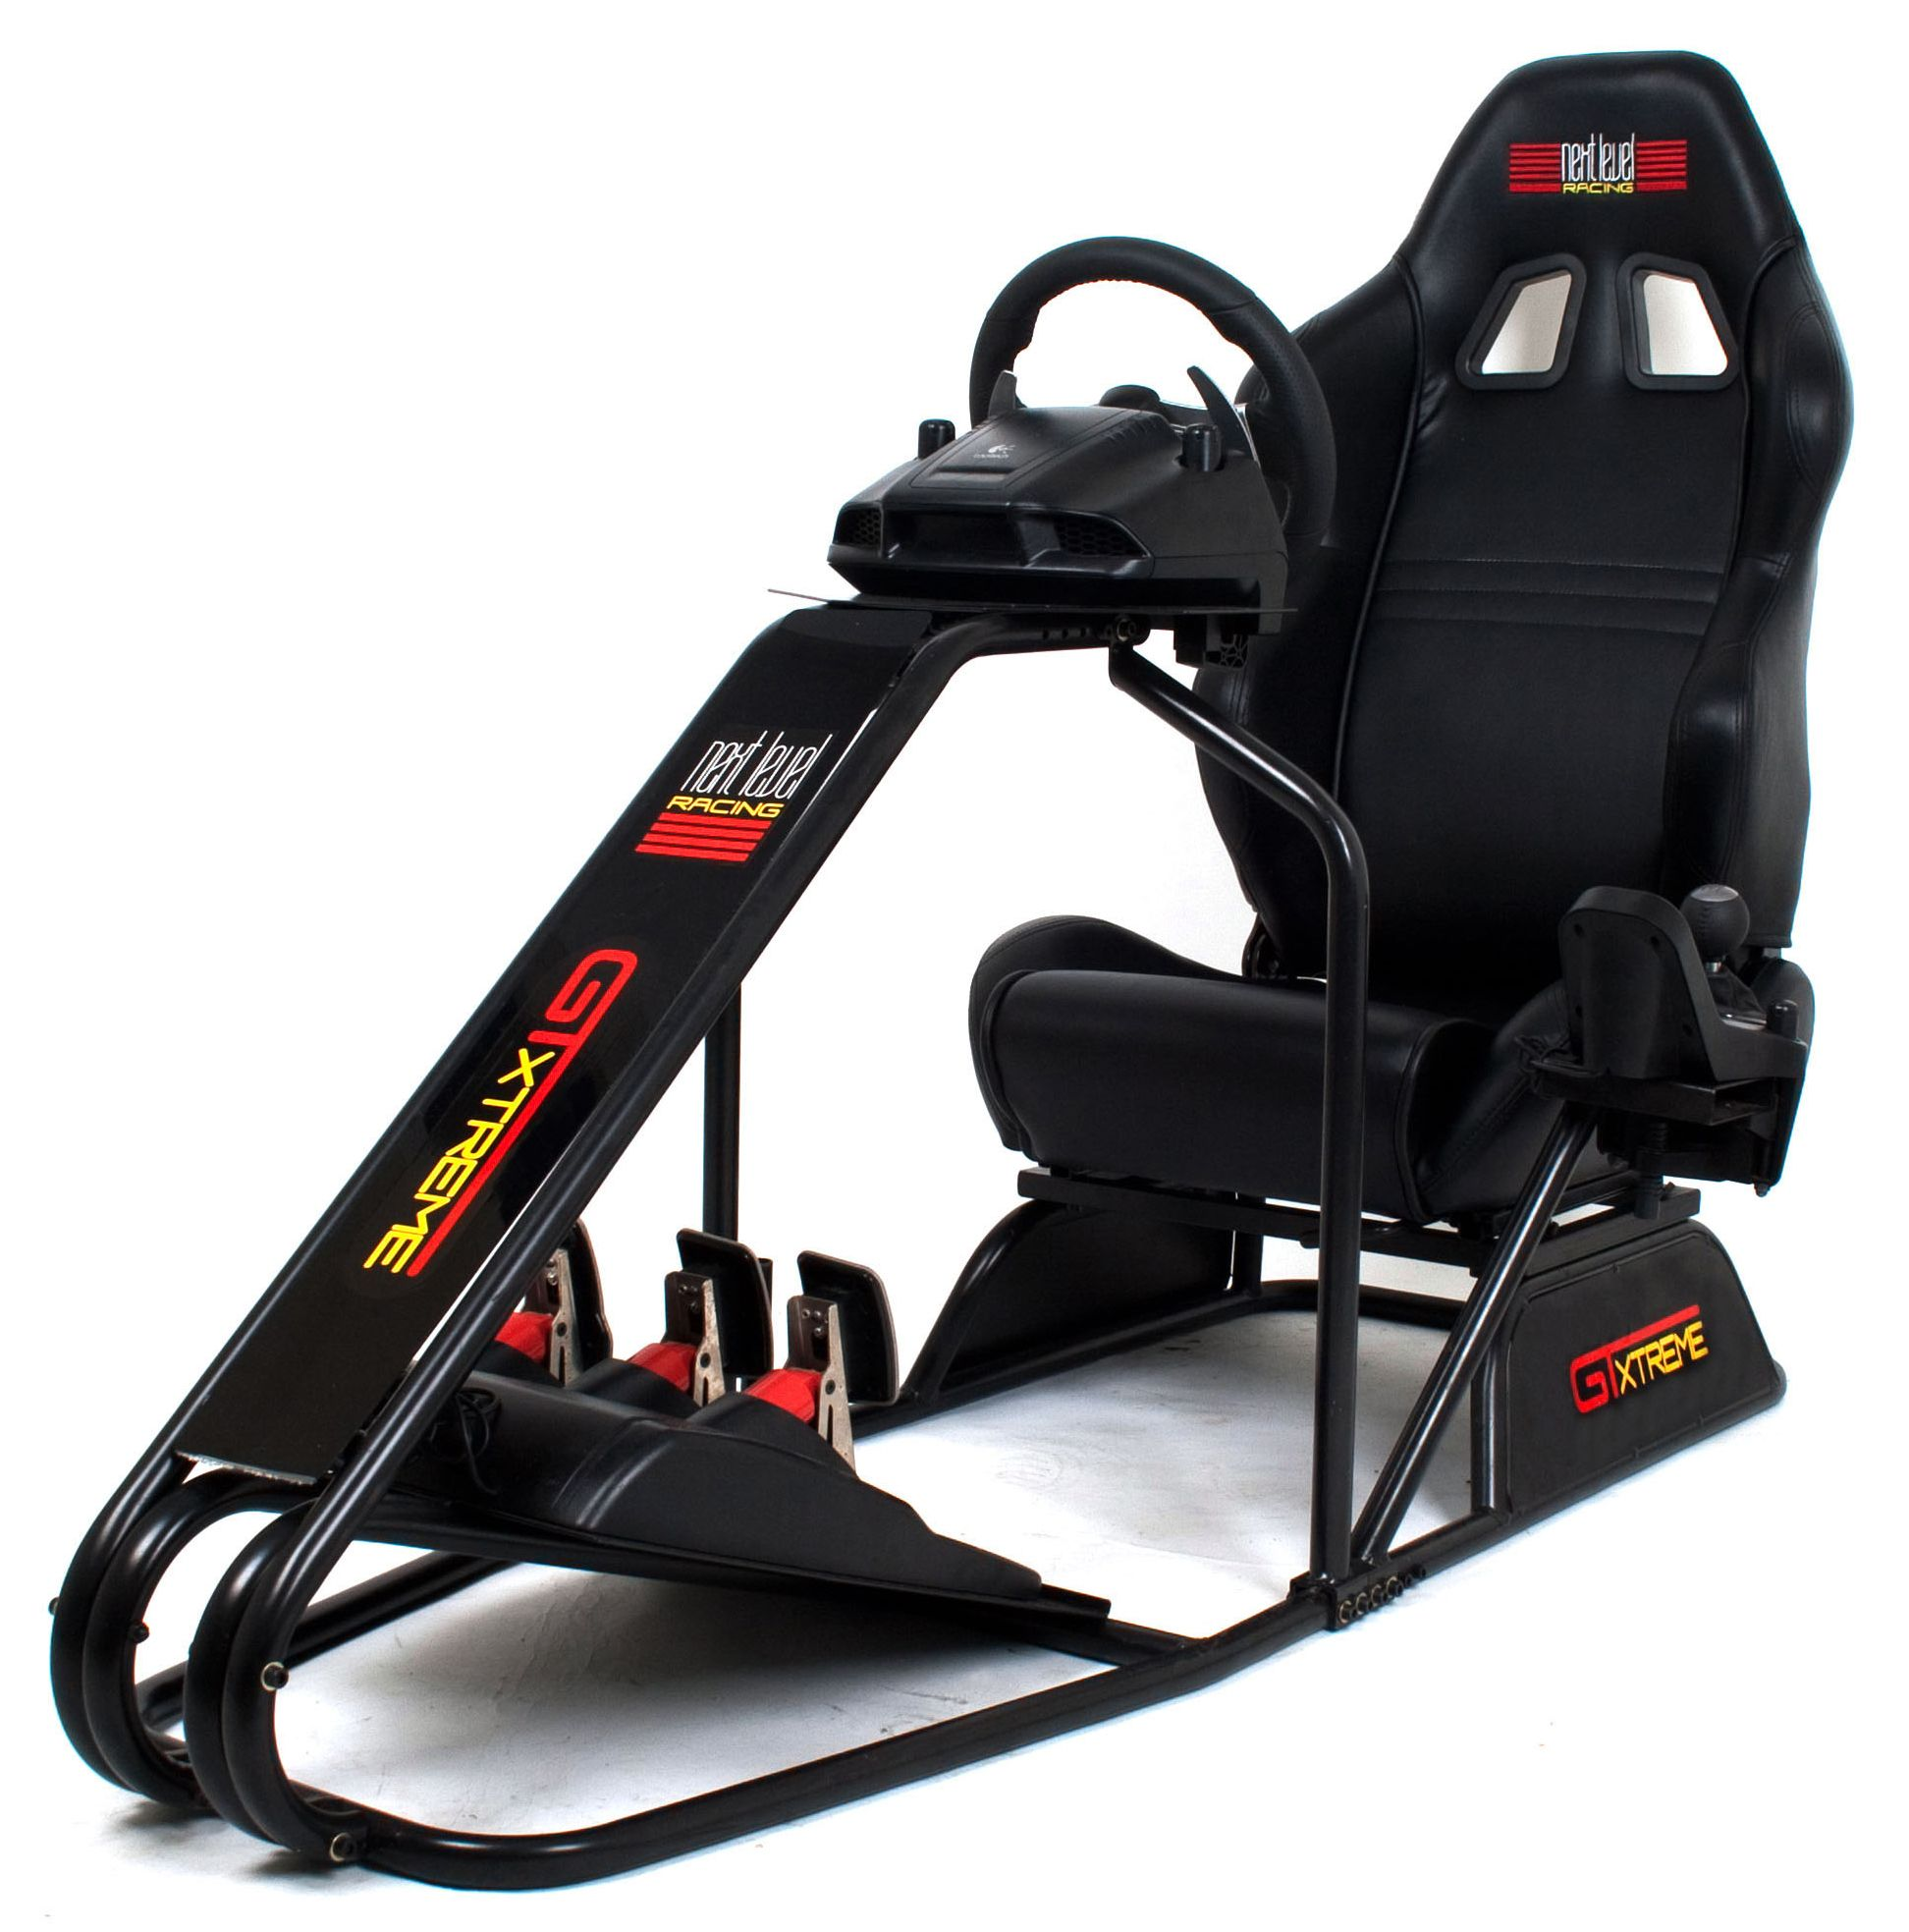 F1 Racing Chair Chairs And Tables For Sale Next Level Gtxtreme Simulator Sim In 2019